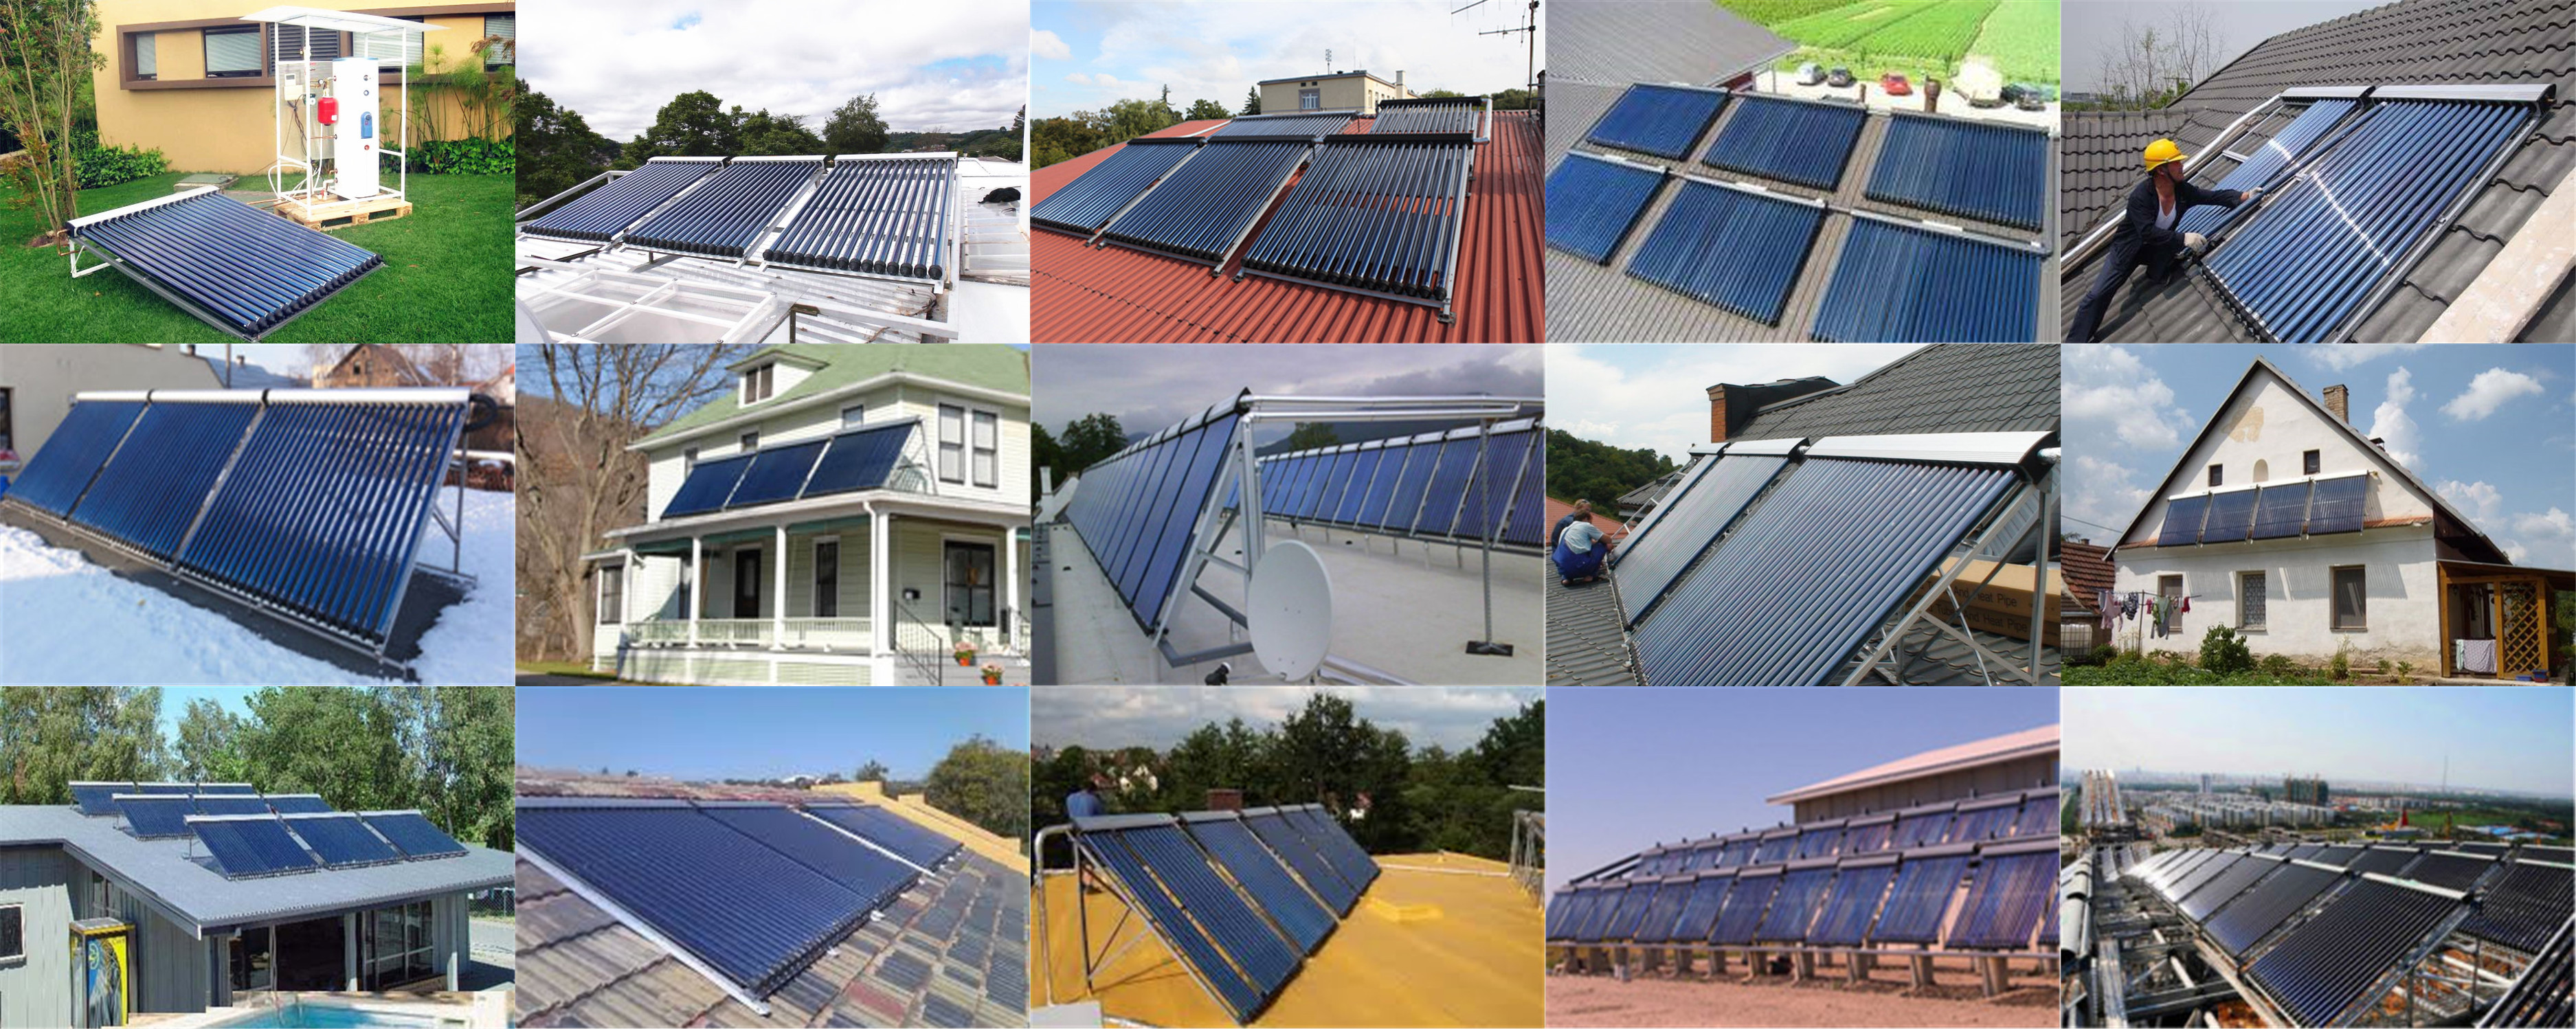 Widely use separated solar water heater heat pipe collector